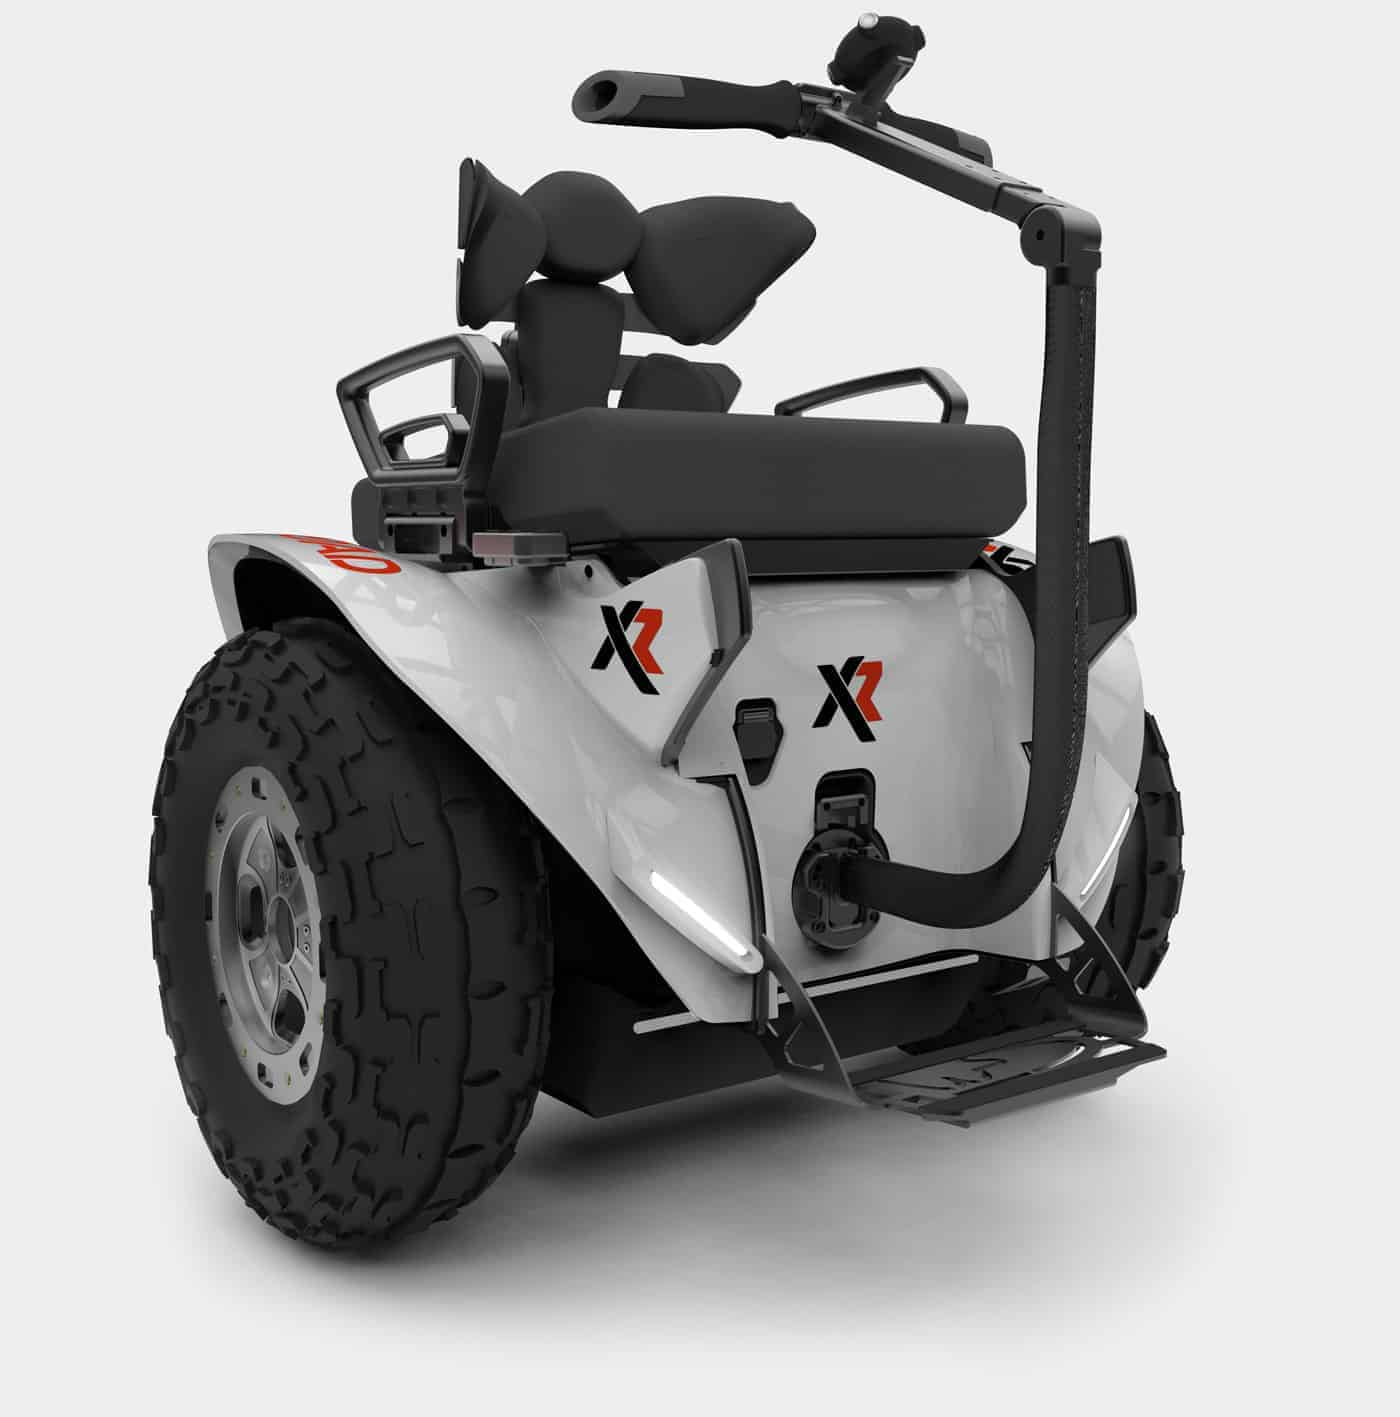 Genny XR - Off Road kit Looks Cool & Suitable for Beaches